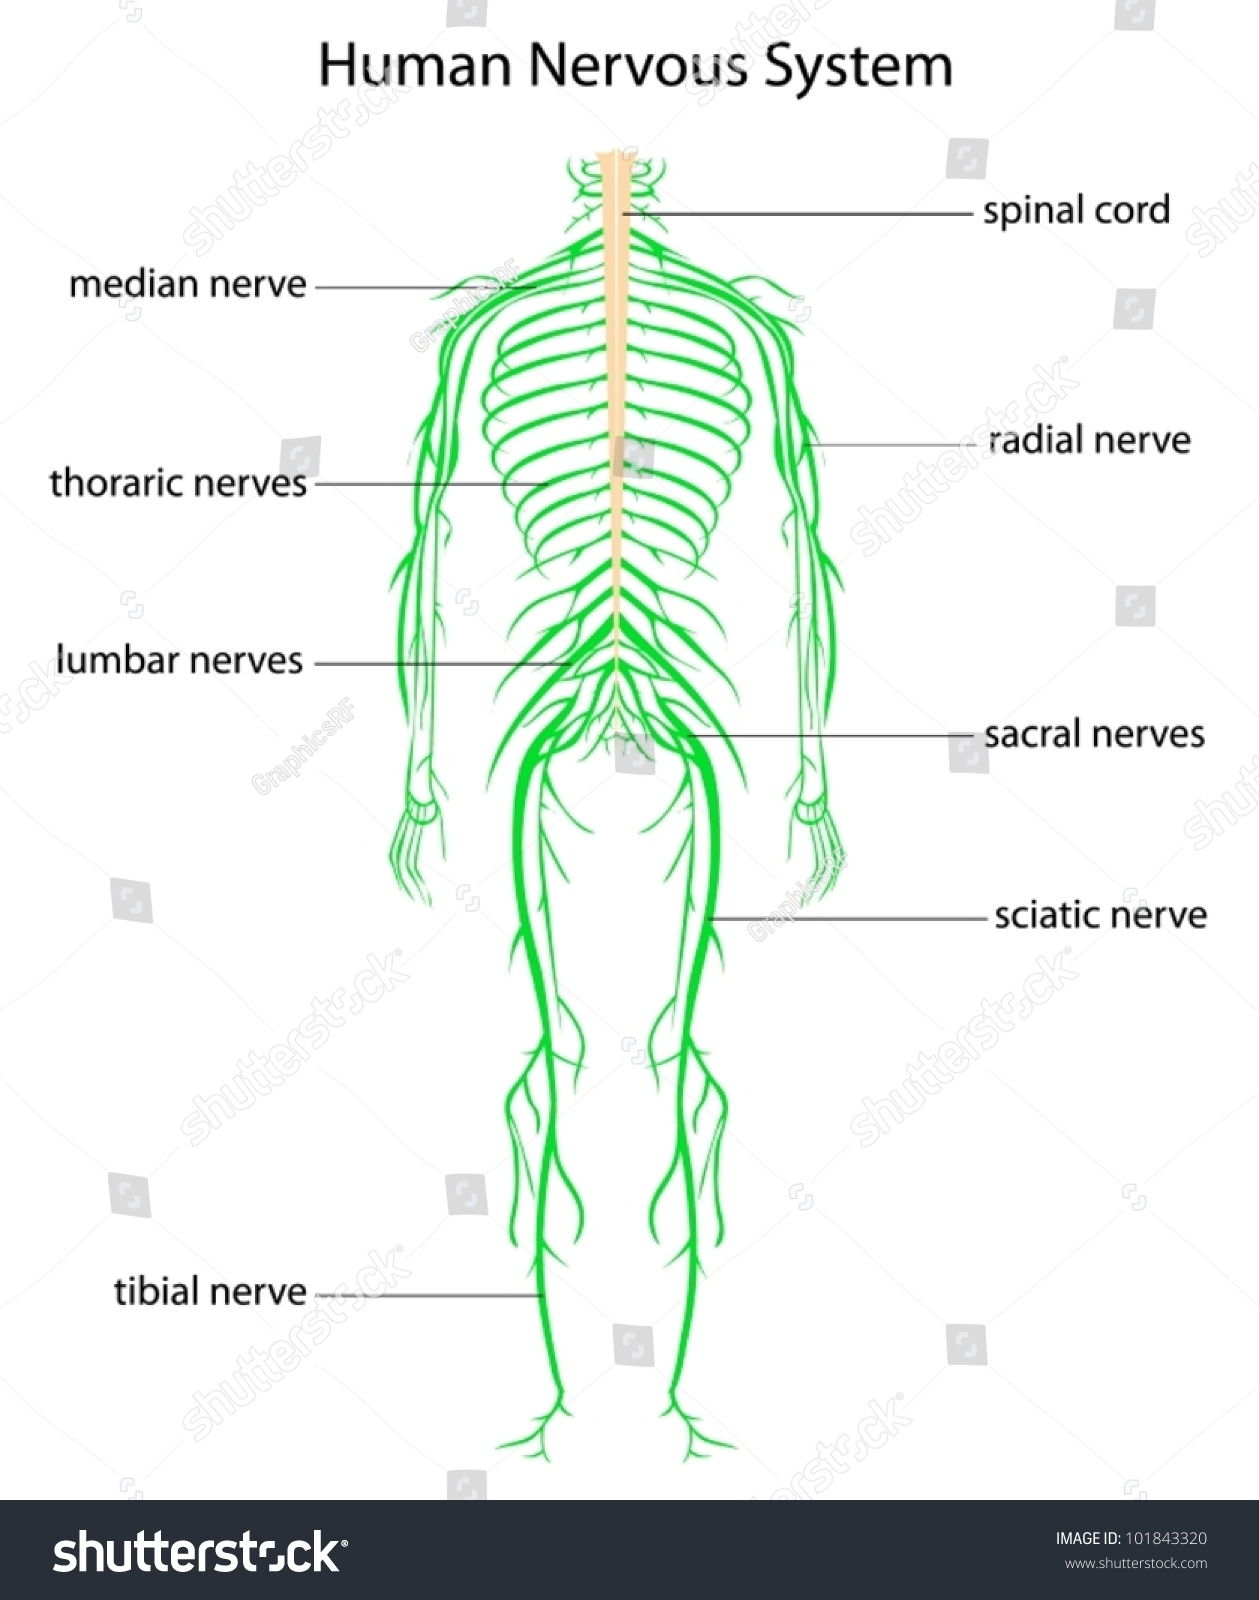 Illustration Human Nervous System Labels Stock Vector 101843320 ...